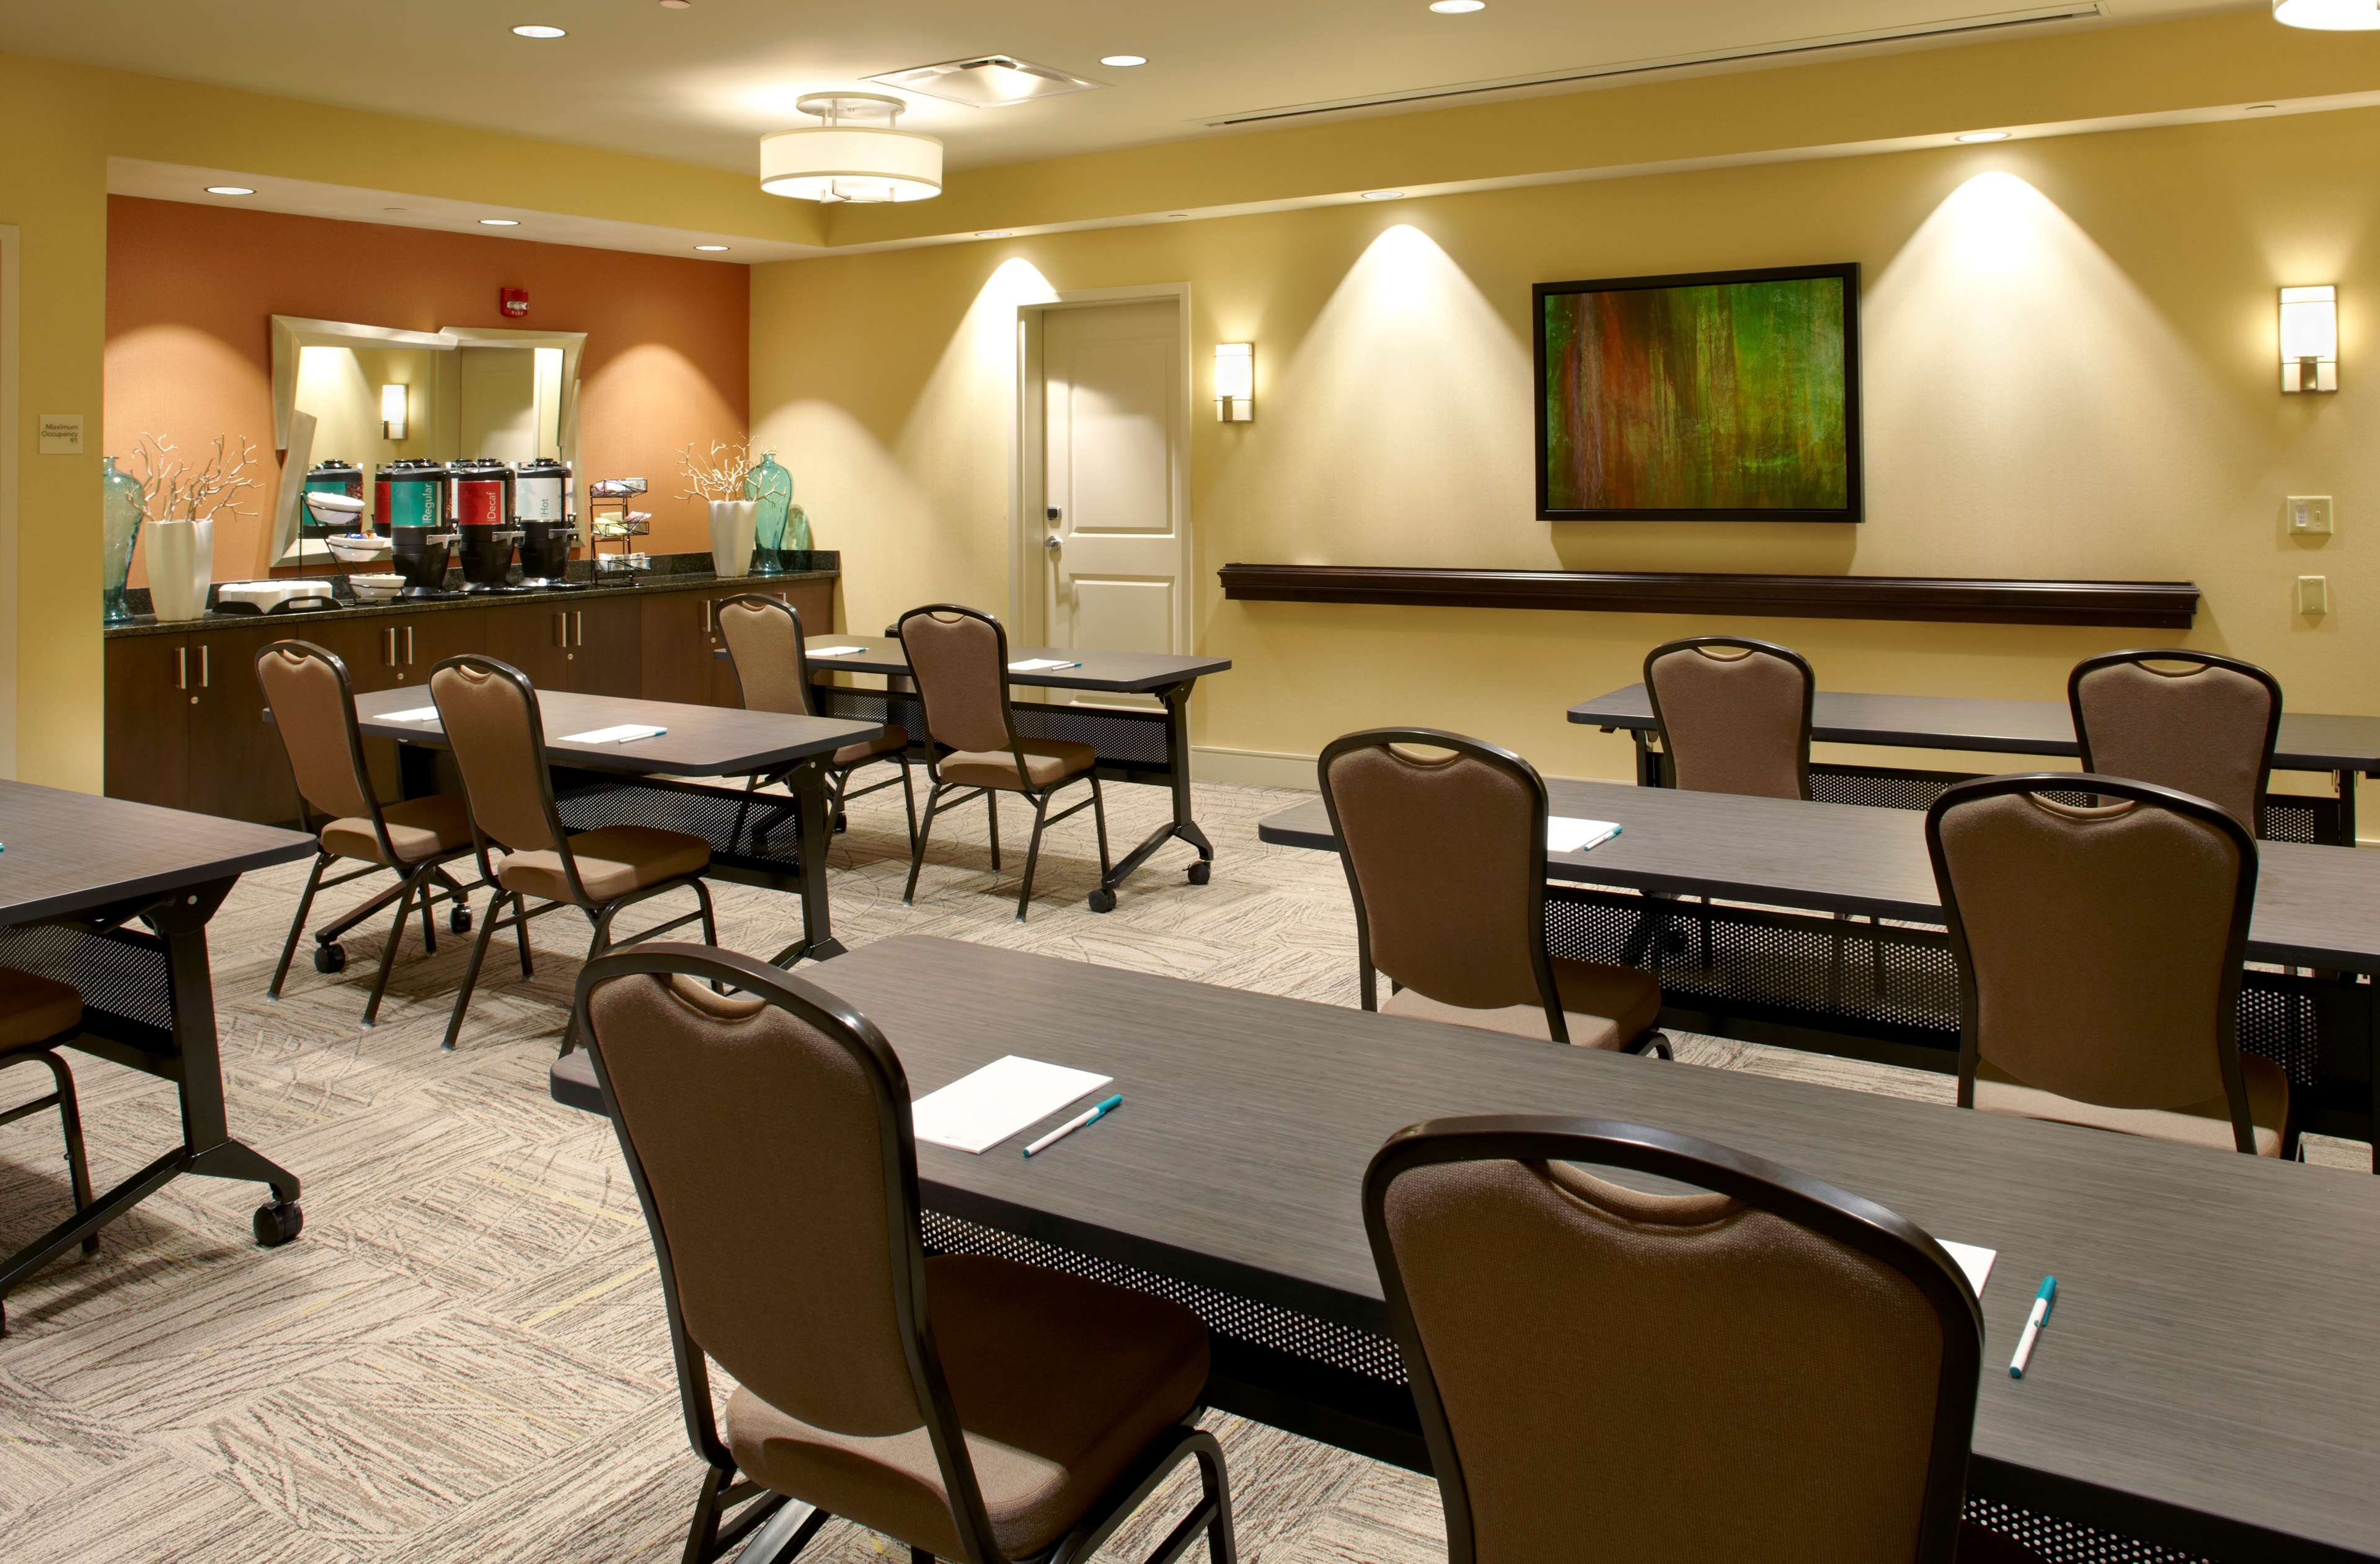 Homewood Suites by Hilton Pittsburgh Airport Robinson Mall Area PA image 24